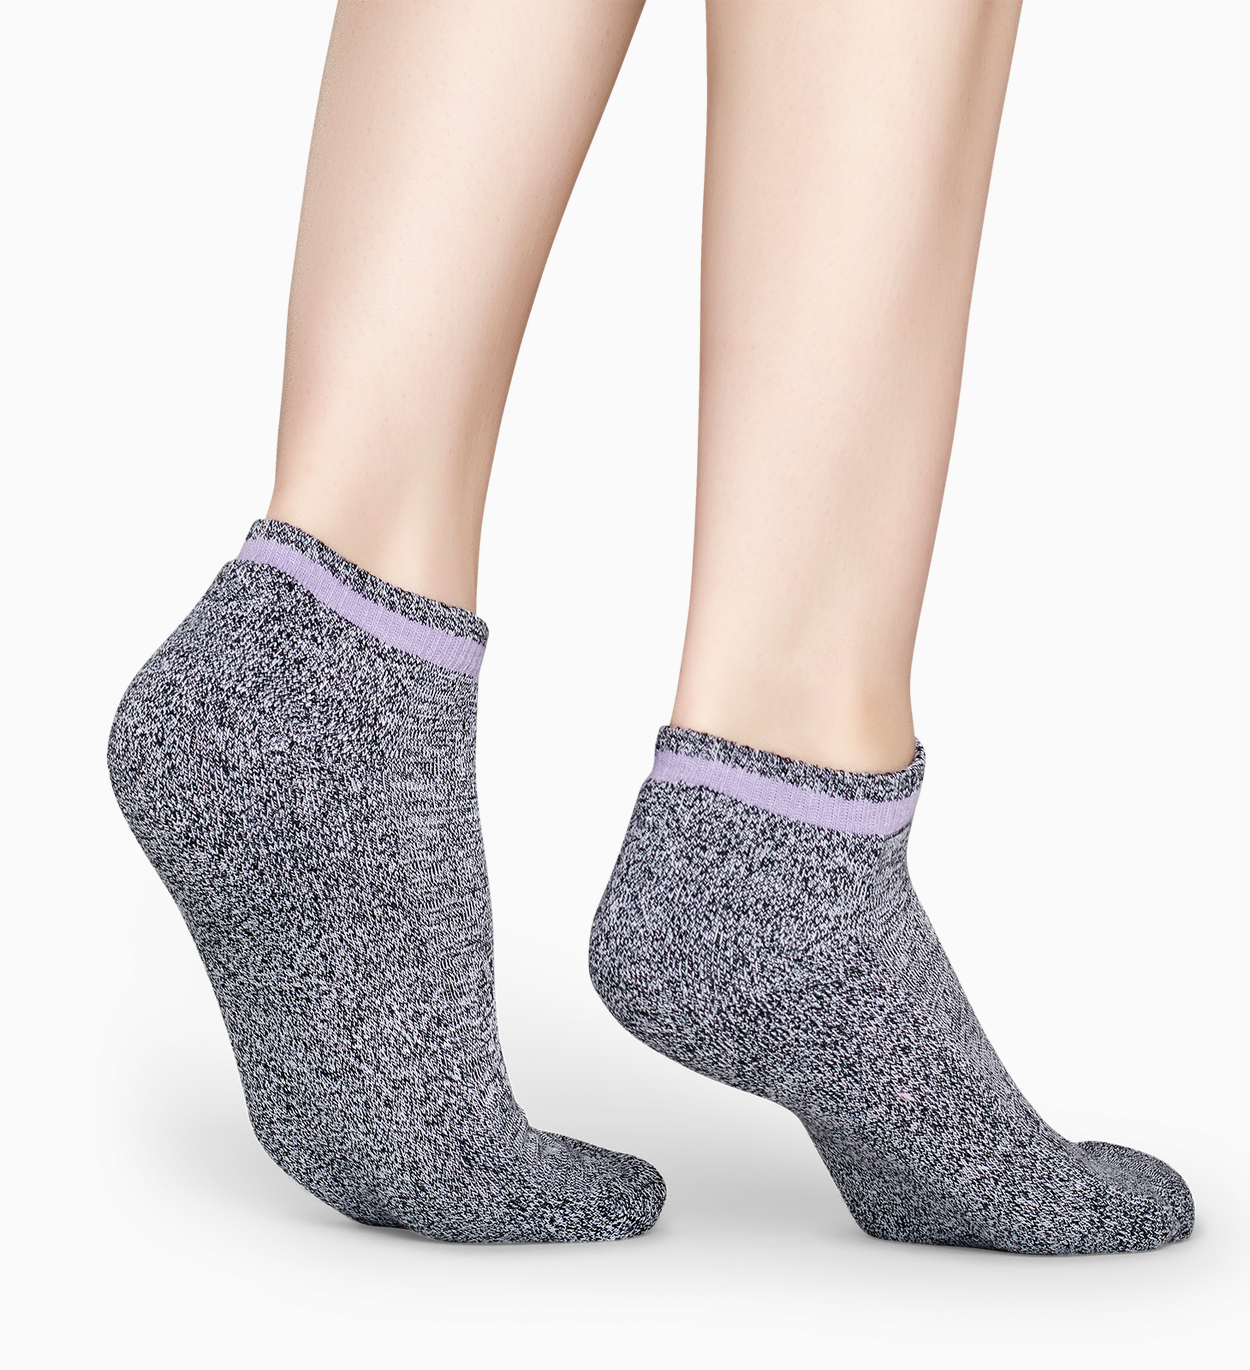 Violetit Urheilusukat 2kpl: Alien - ATHLETIC | Happy Socks